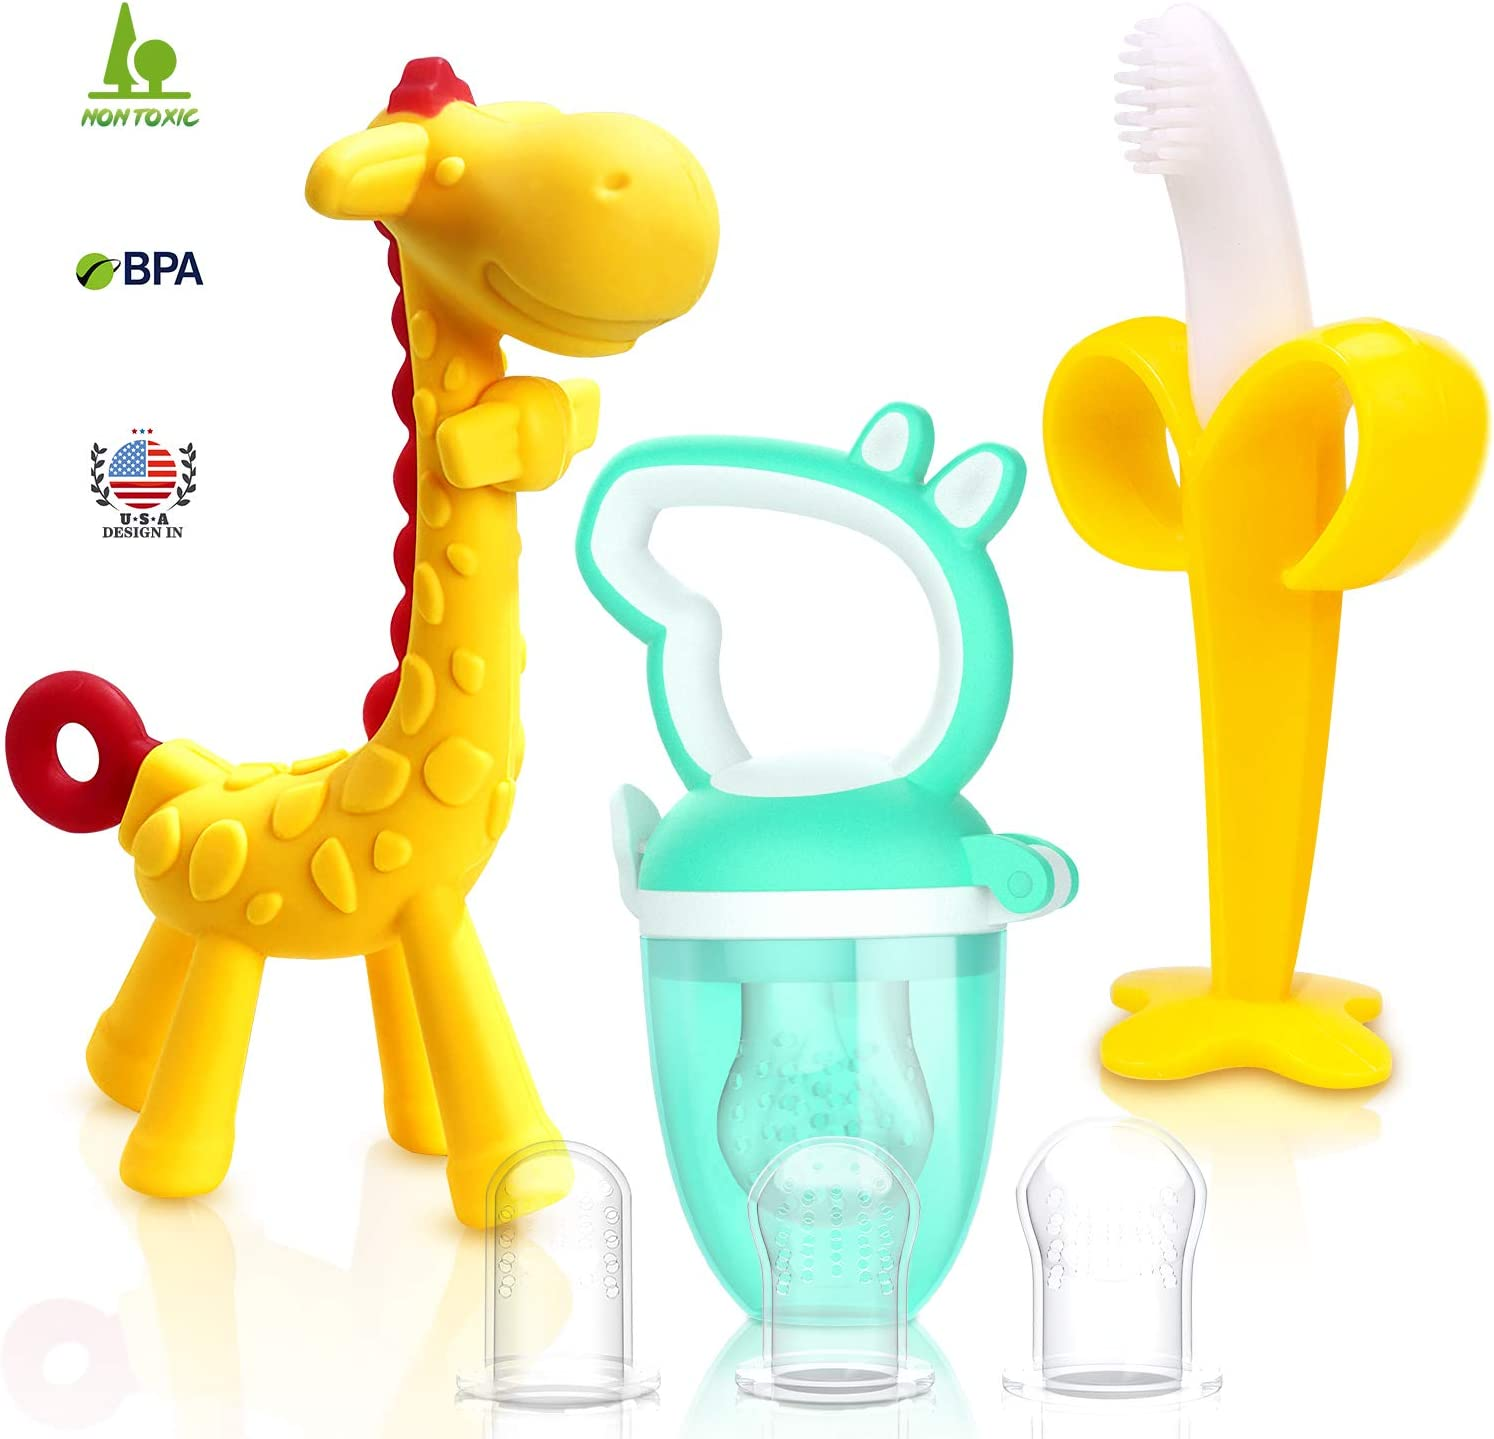 SHARE&CARE Baby Teething Toys and Natural Organic Food Feeder Pacifier/Baby Teether Chew Toys Fresh Fruit Feeding/ 2 Teethers and 1 Feeder with 3 Silicone Sacs (Yellow)